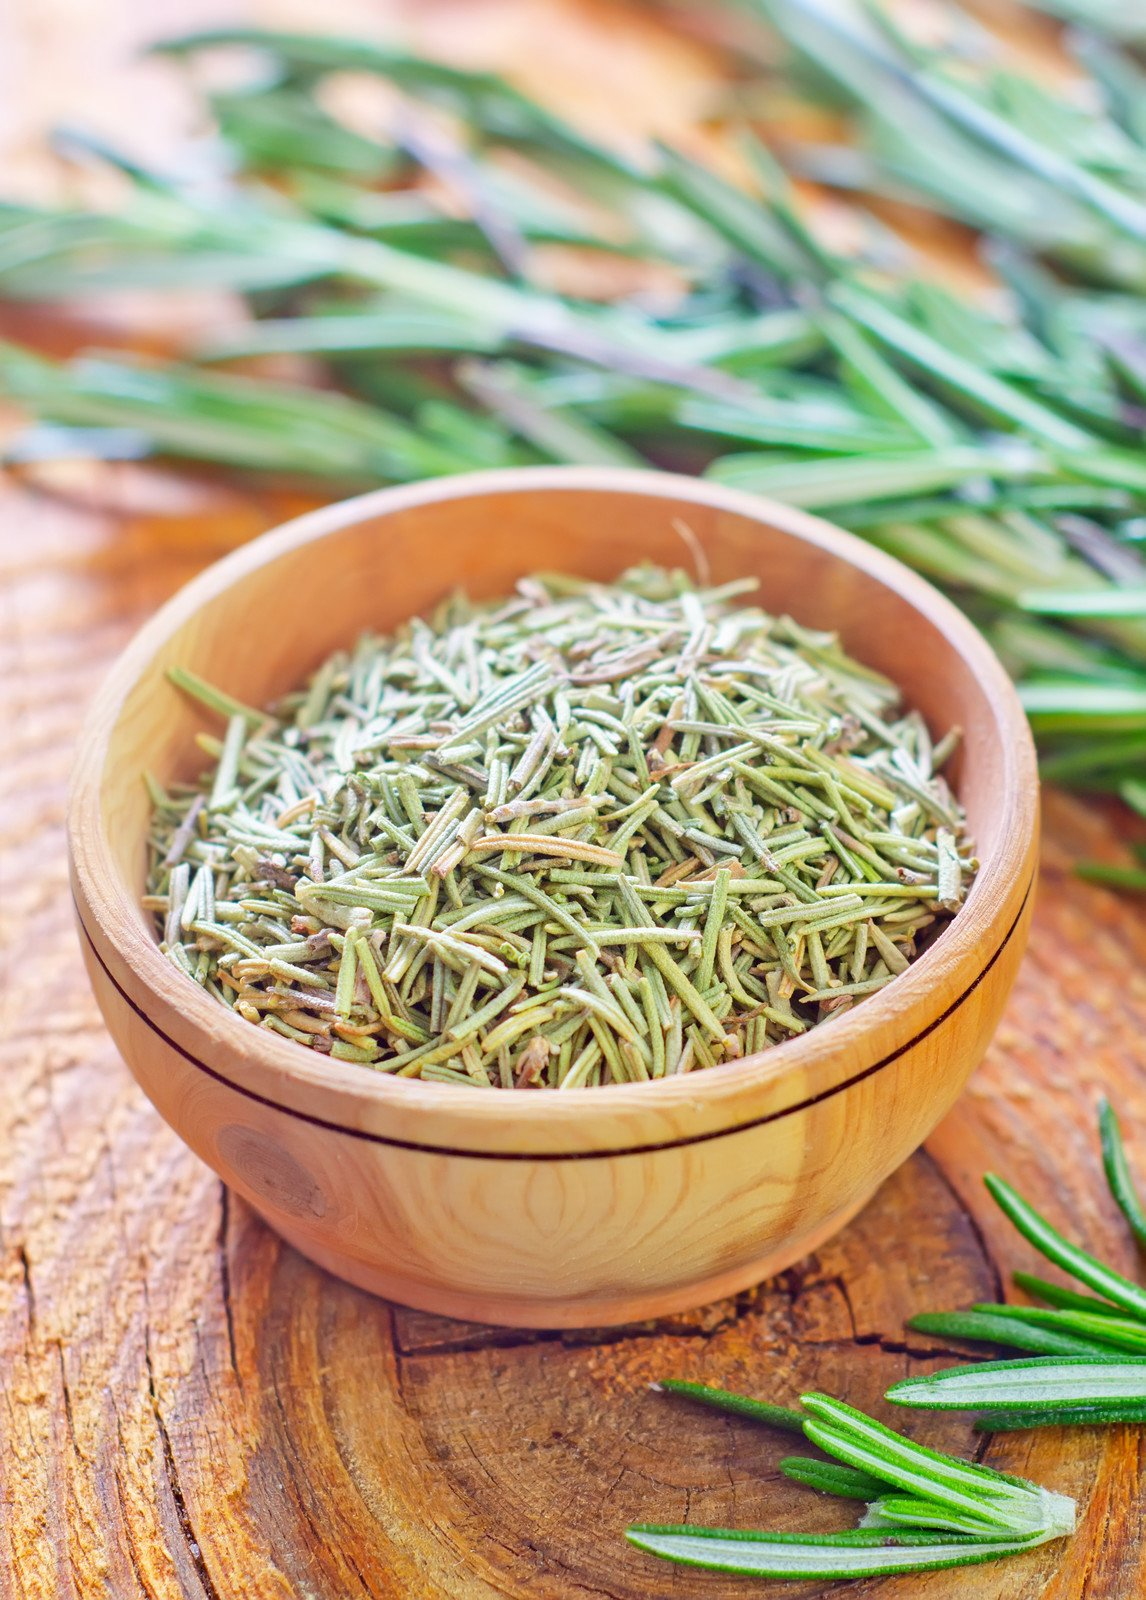 bMAKER Rosemary Premium Dried Herb 1 lb - Kosher Certified & Edible Food Grade- Best for Cooking, Seasoning for Your Steak, Chicken by bMAKER (Image #2)